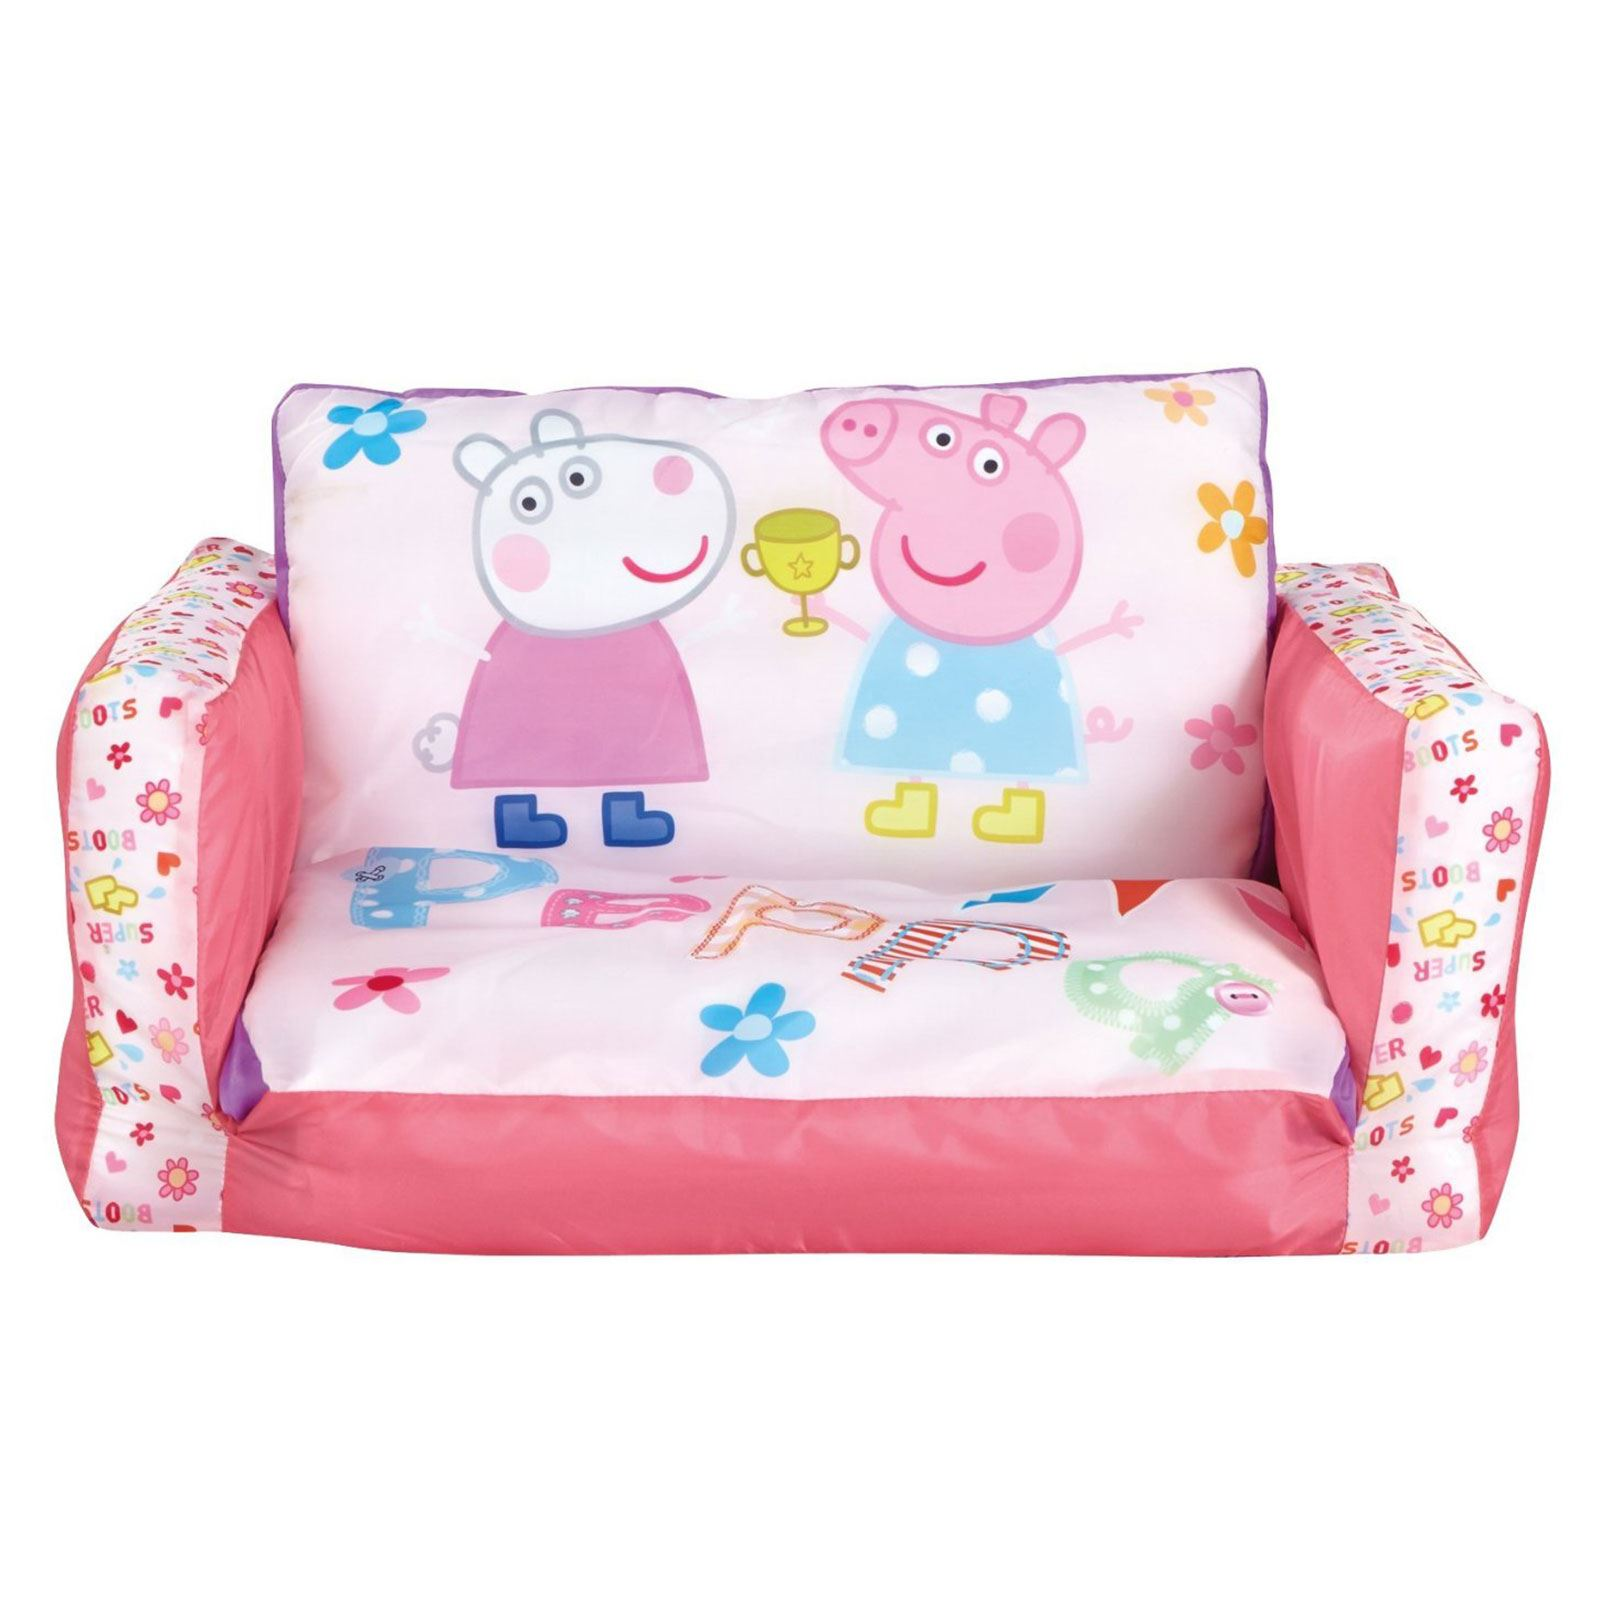 Peppa Pig Flip Out Mini Sofa Inflatable Kids Girls New 100 Official 757538994973 Ebay